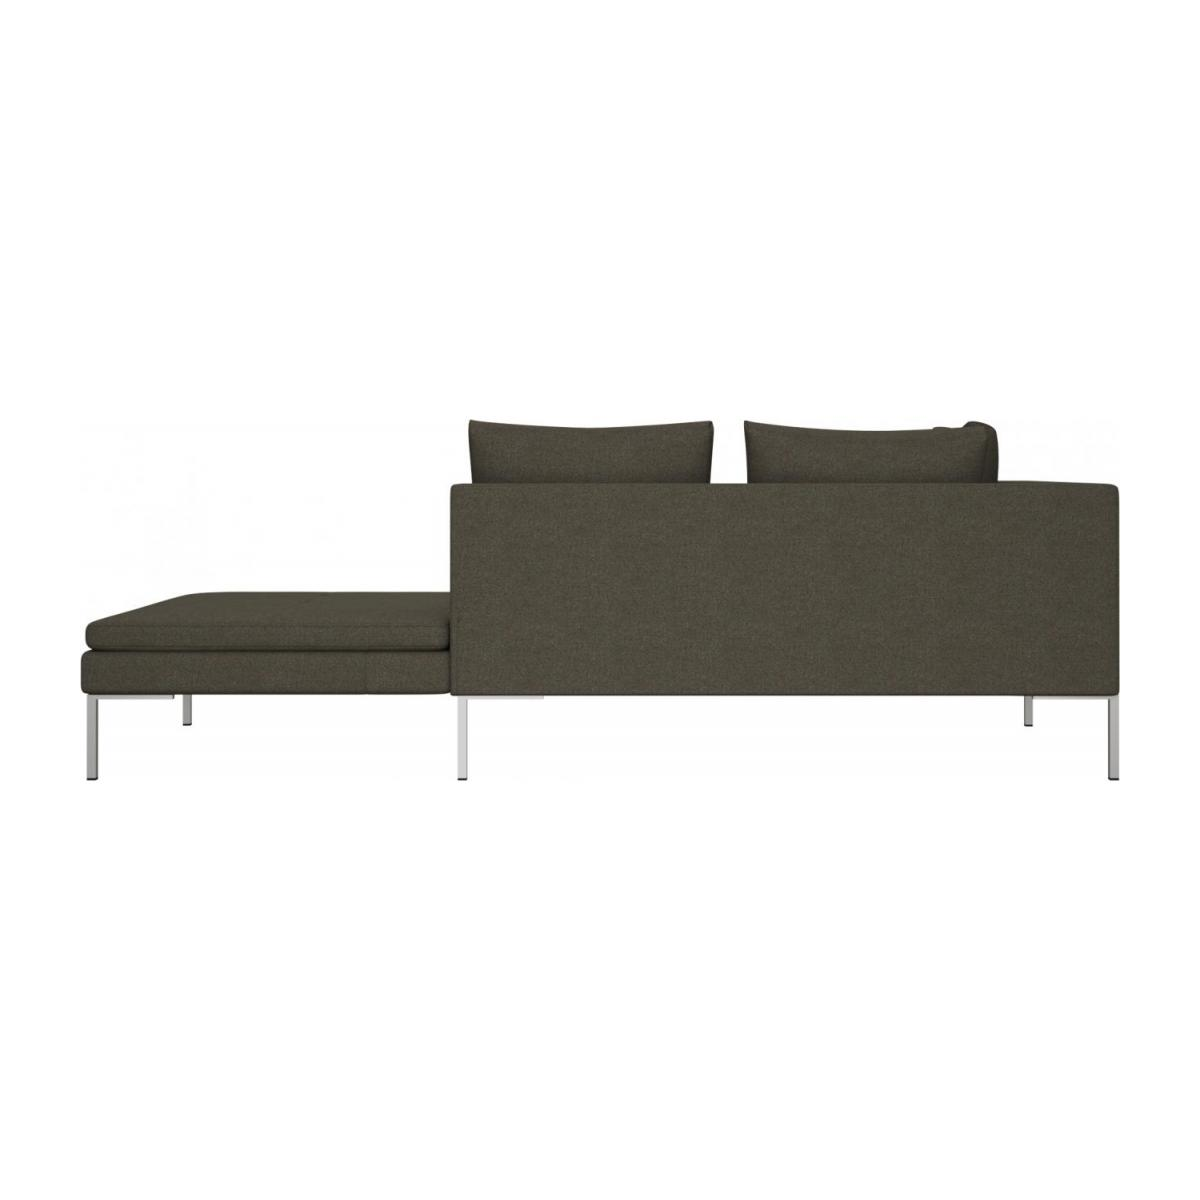 Right chaise longue in Lecce fabric, slade grey n°3